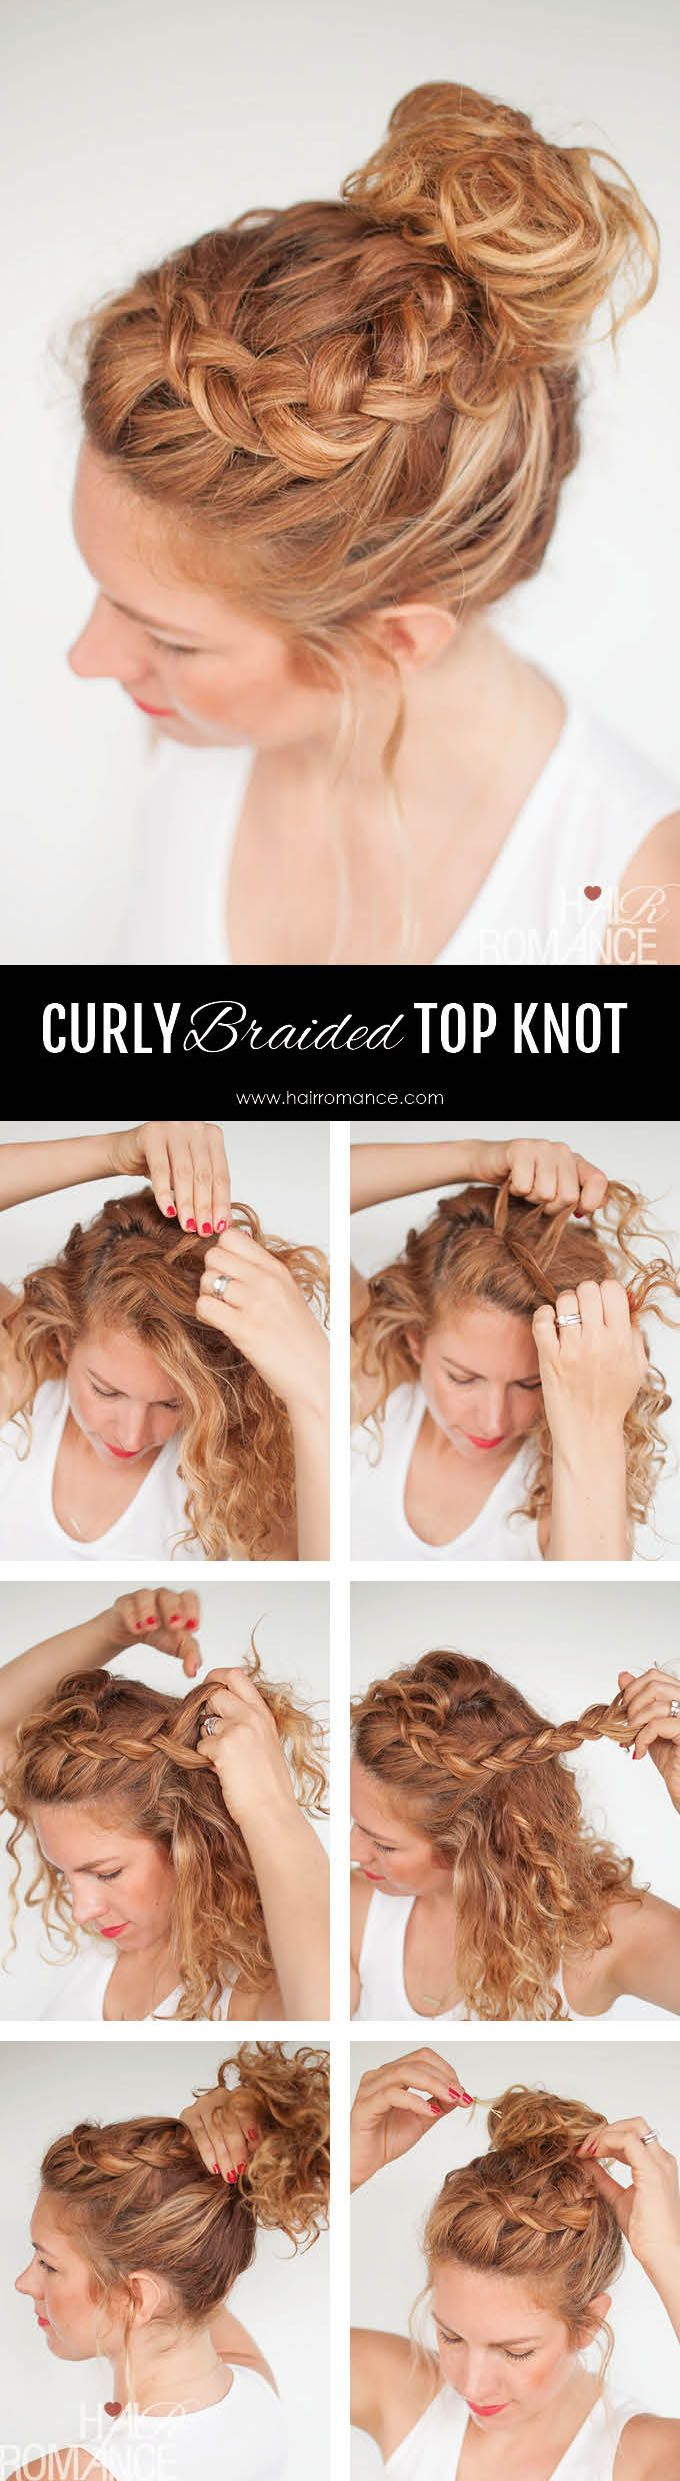 Wondrous 1000 Ideas About Curly Hairstyles On Pinterest Hairstyles Short Hairstyles For Black Women Fulllsitofus